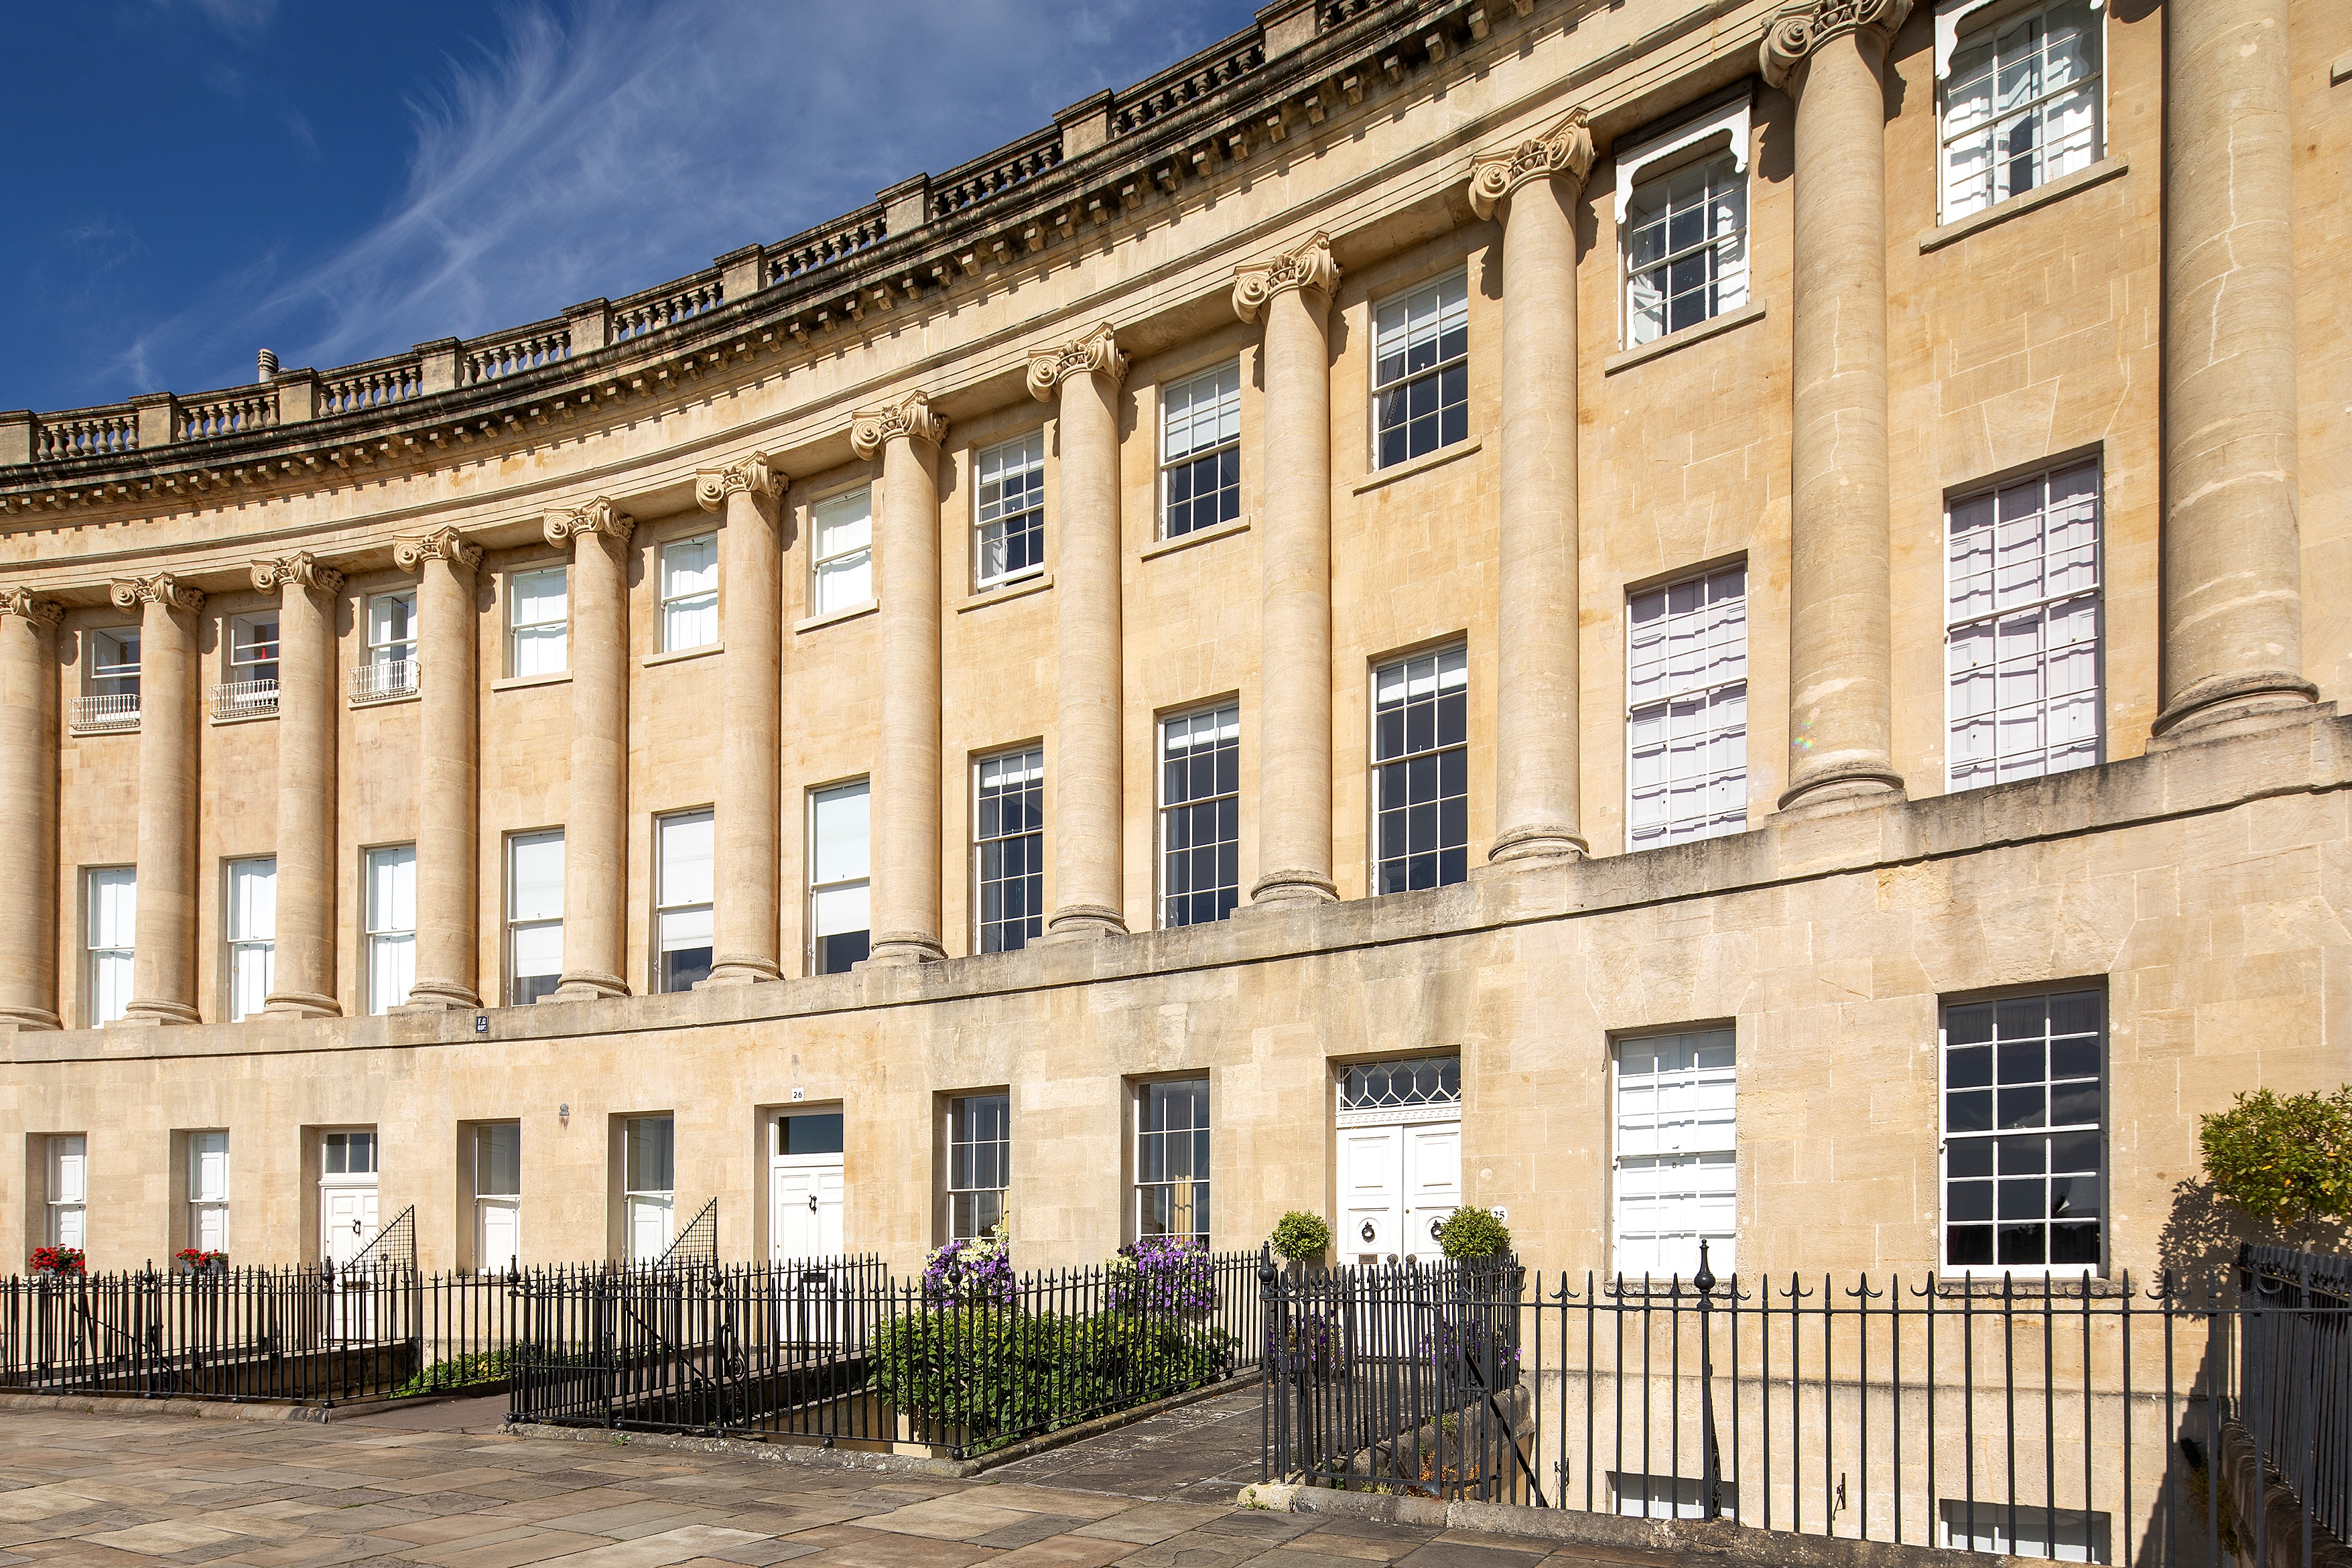 A Georgian jewel: One of the few complete townhouses remaining on Bath's Royal Crescent has come up for sale - Country Life